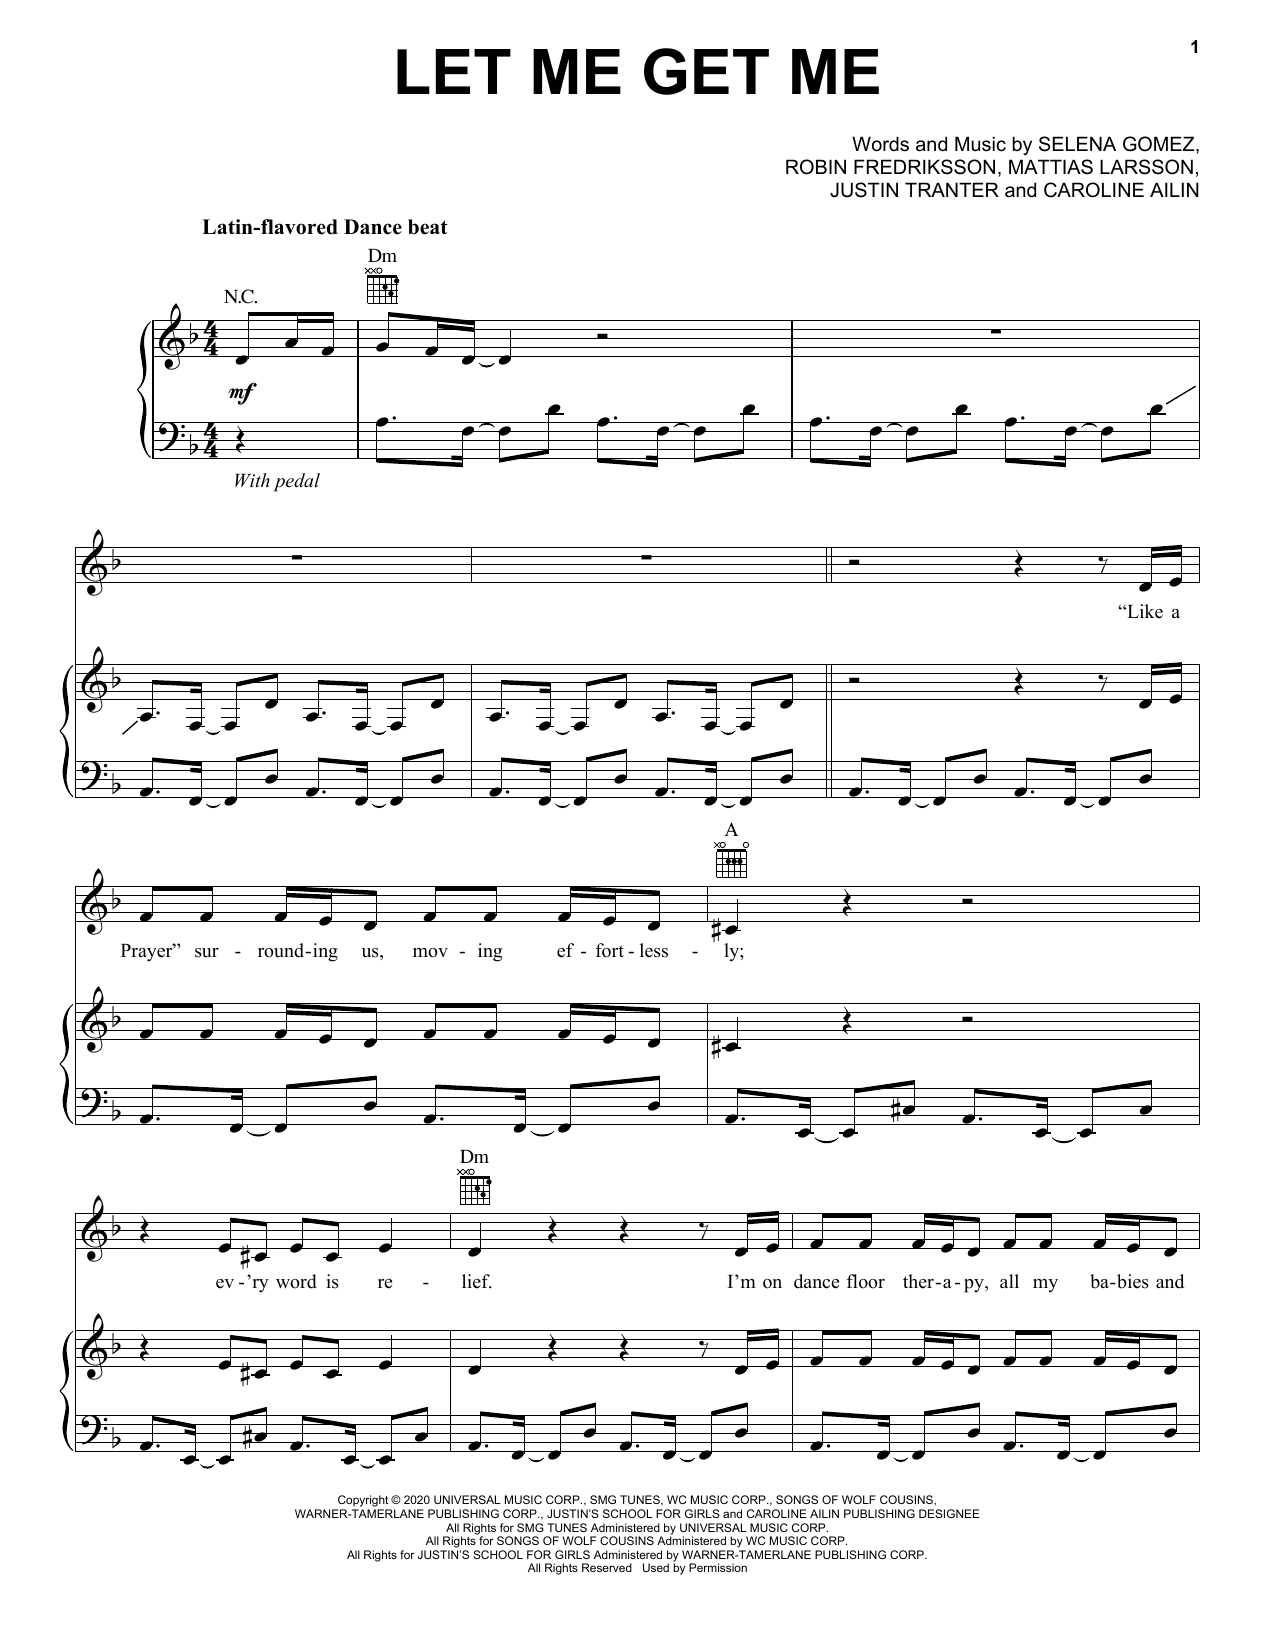 Selena Gomez Let Me Get Me sheet music notes and chords. Download Printable PDF.